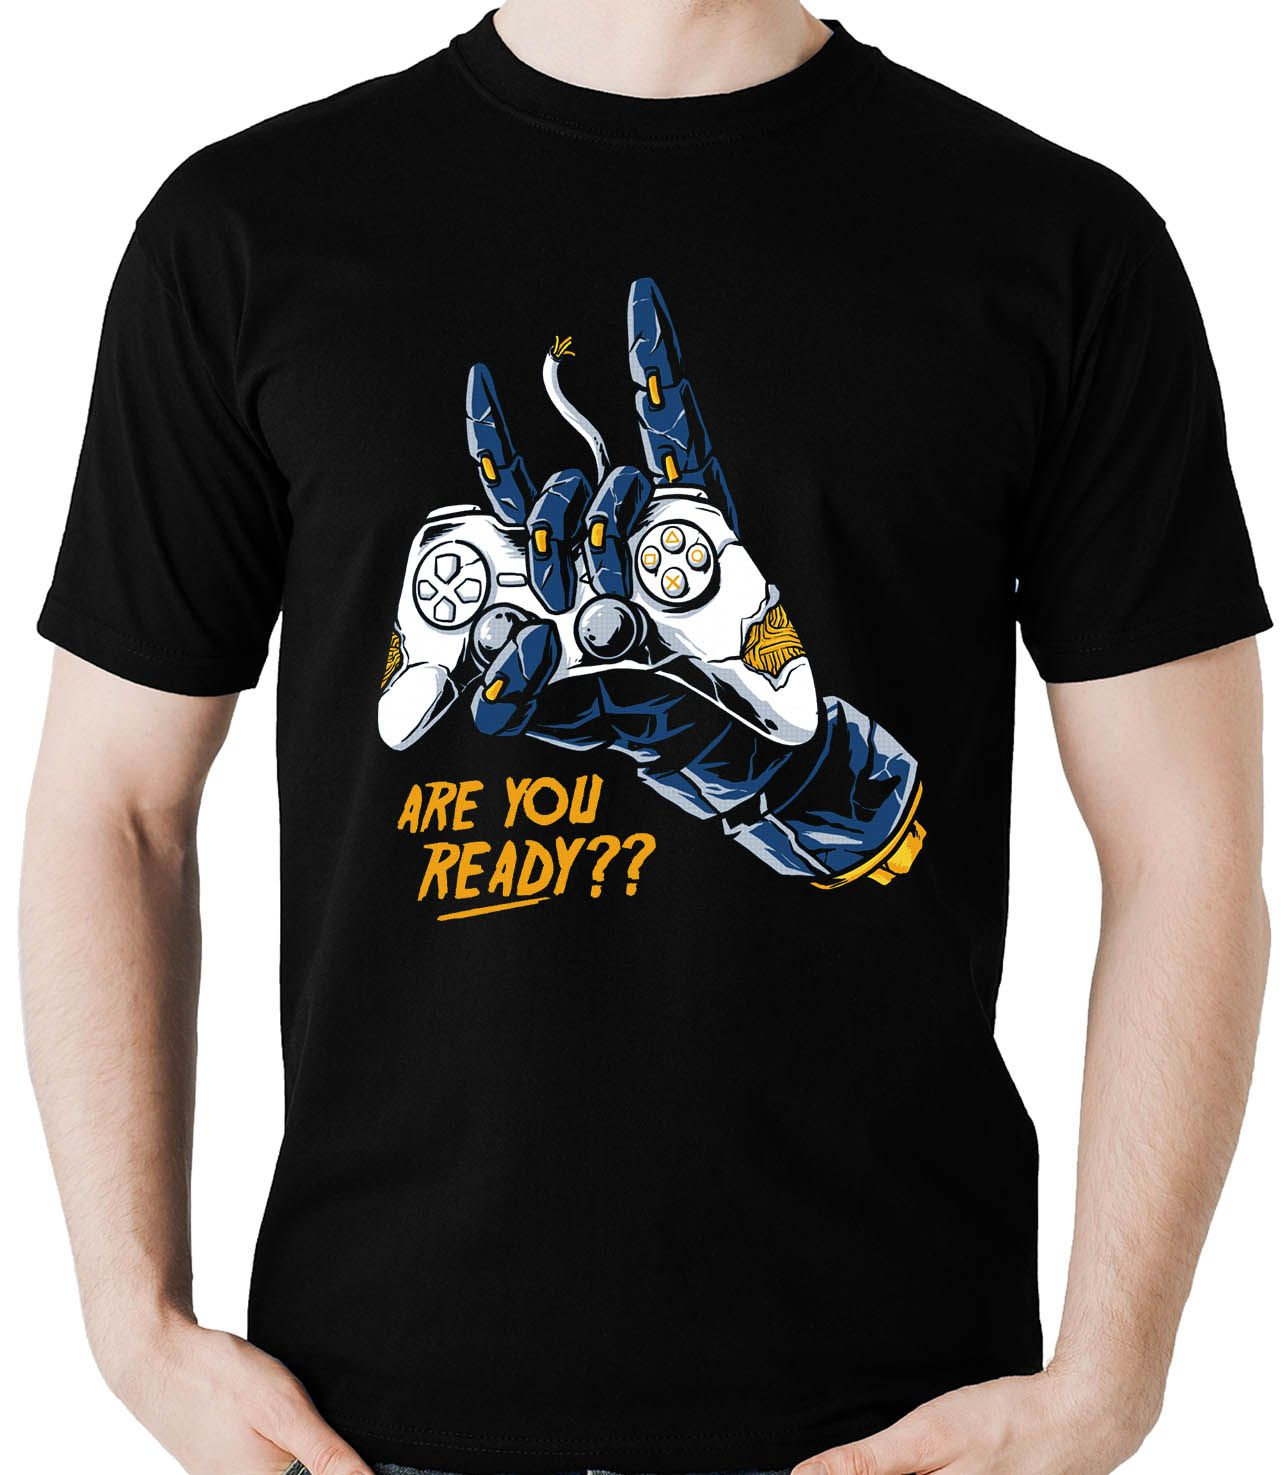 Camiseta Geek Are You Ready Gamer controle Video Game